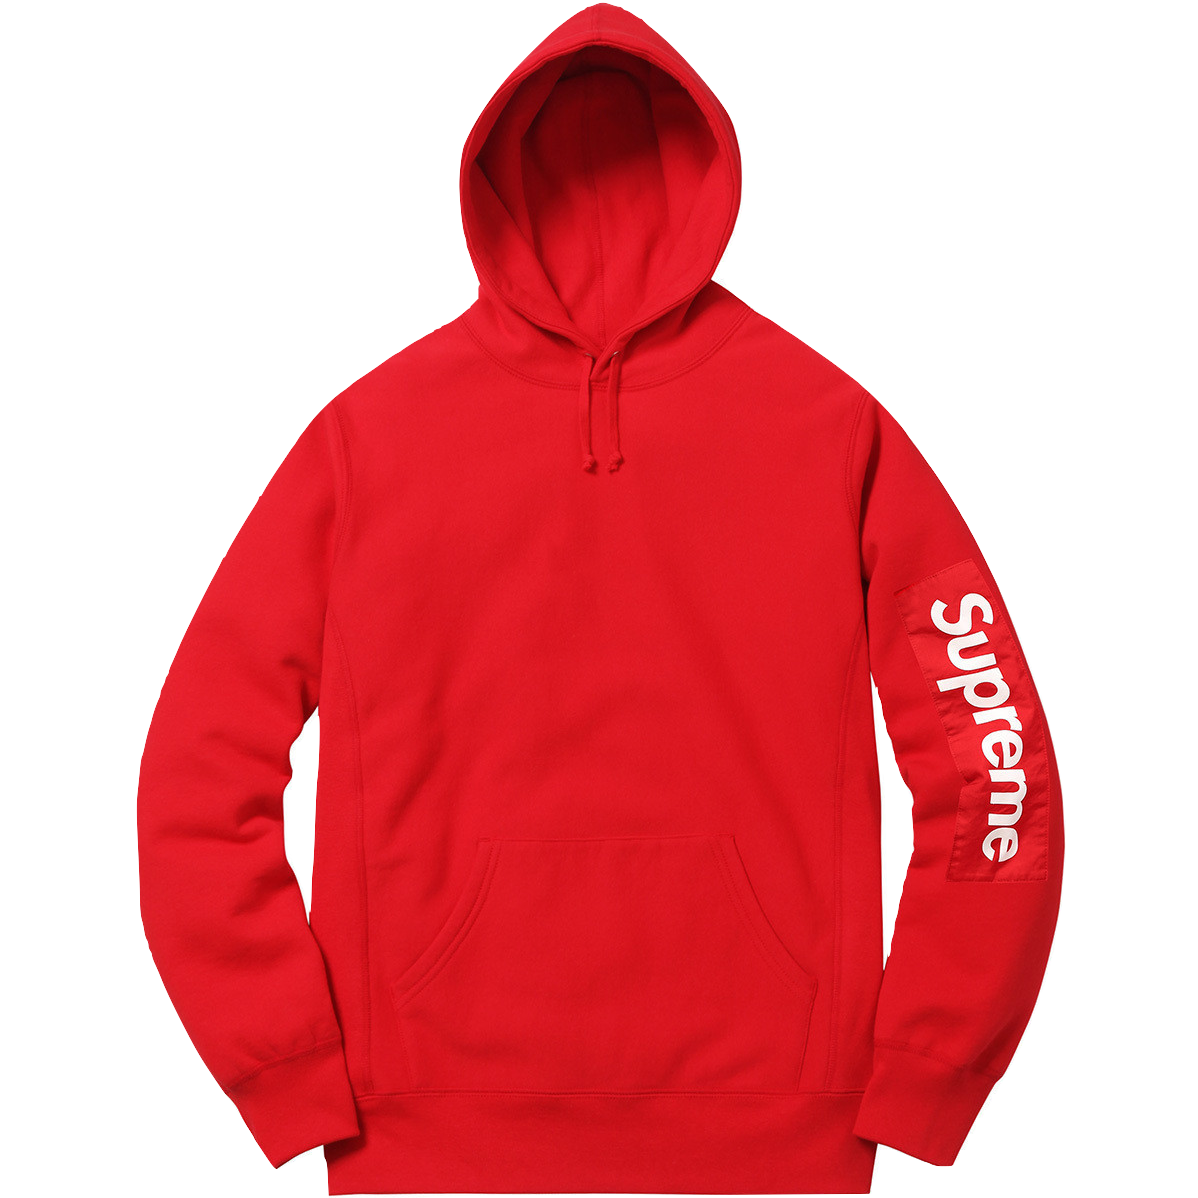 Supreme Sleeve Patch Hooded Sweatshirt - Red